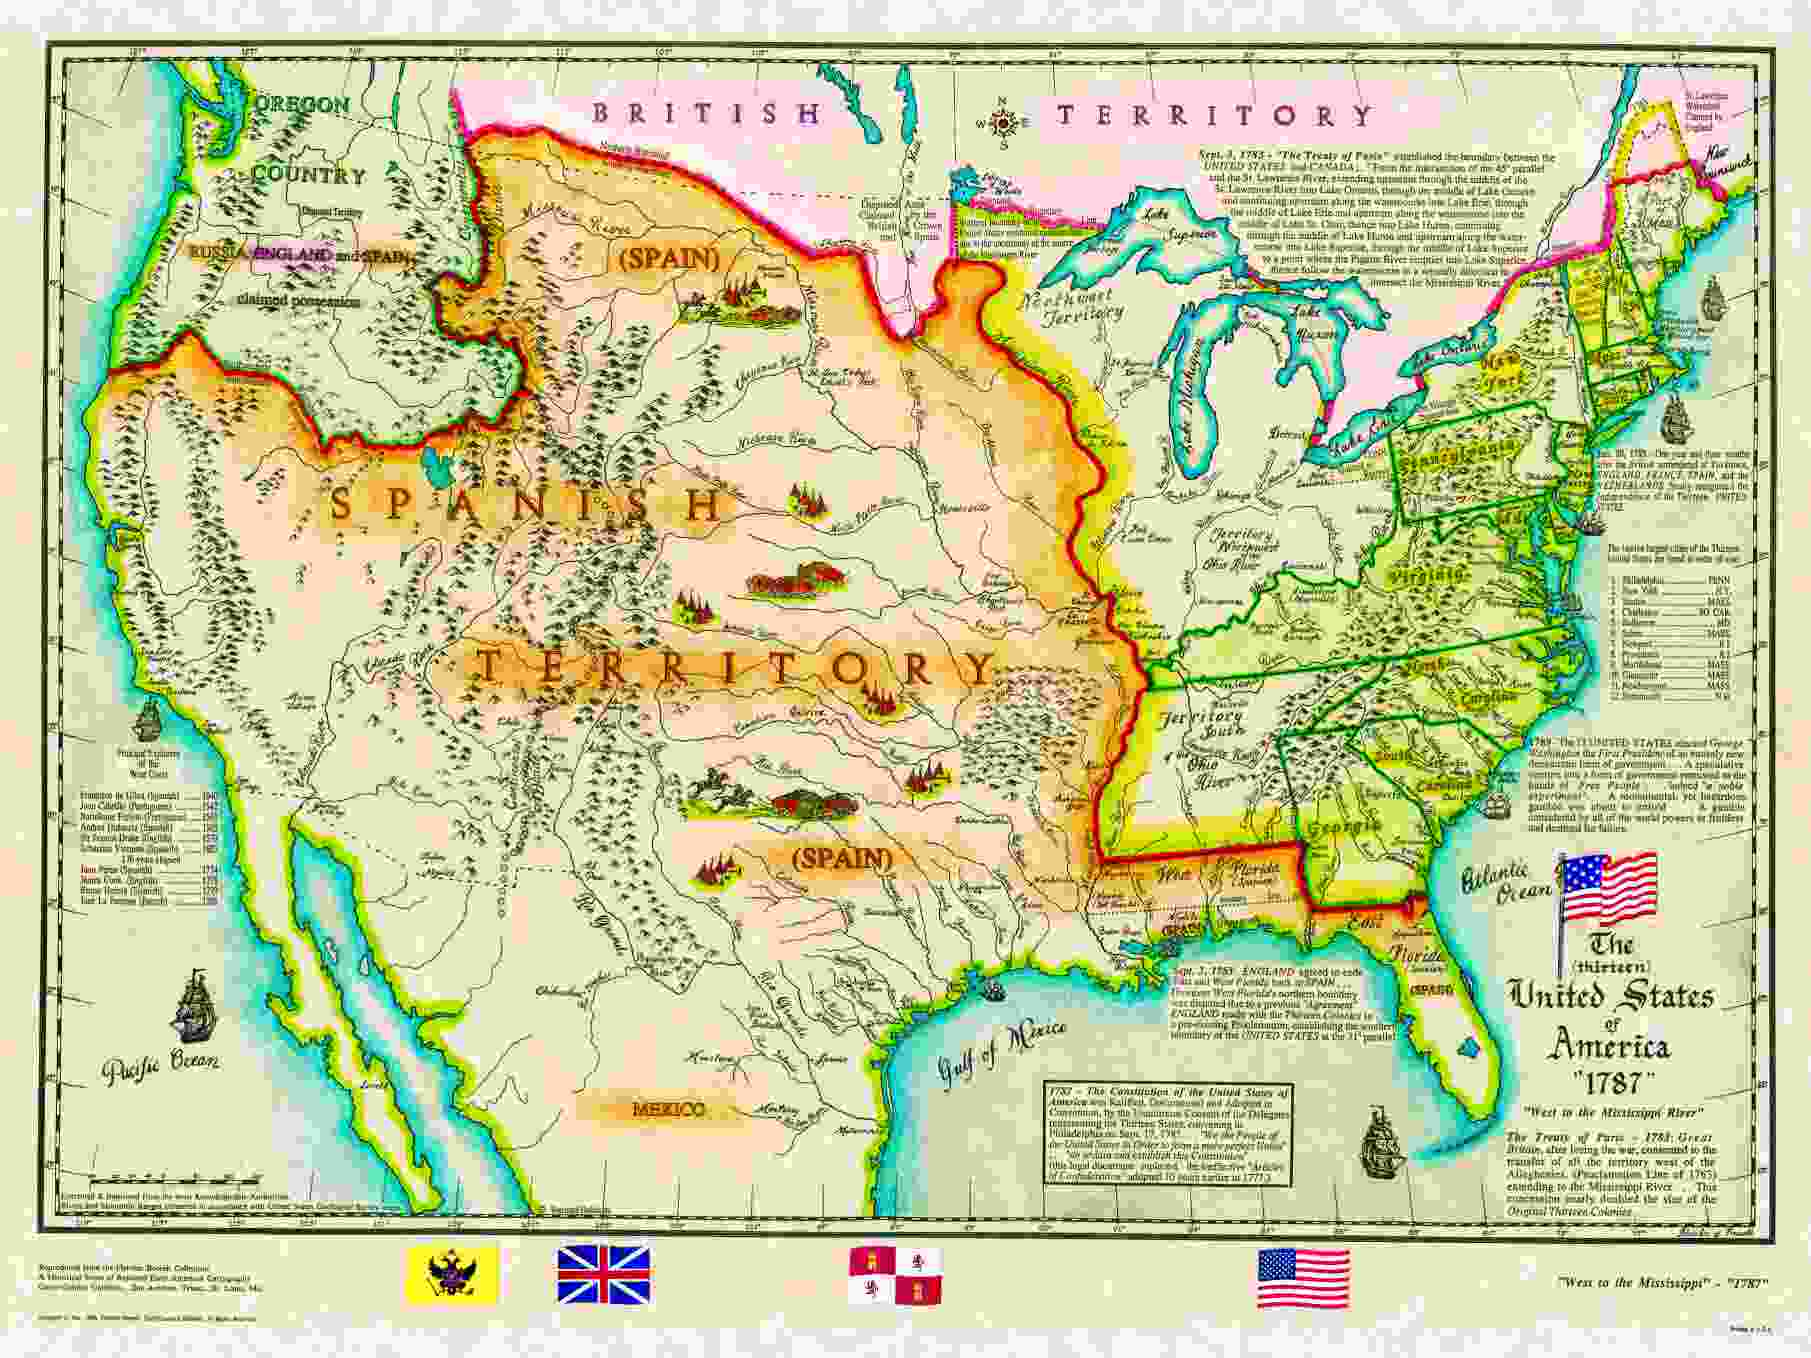 US Historical Series - Us land acquisition map